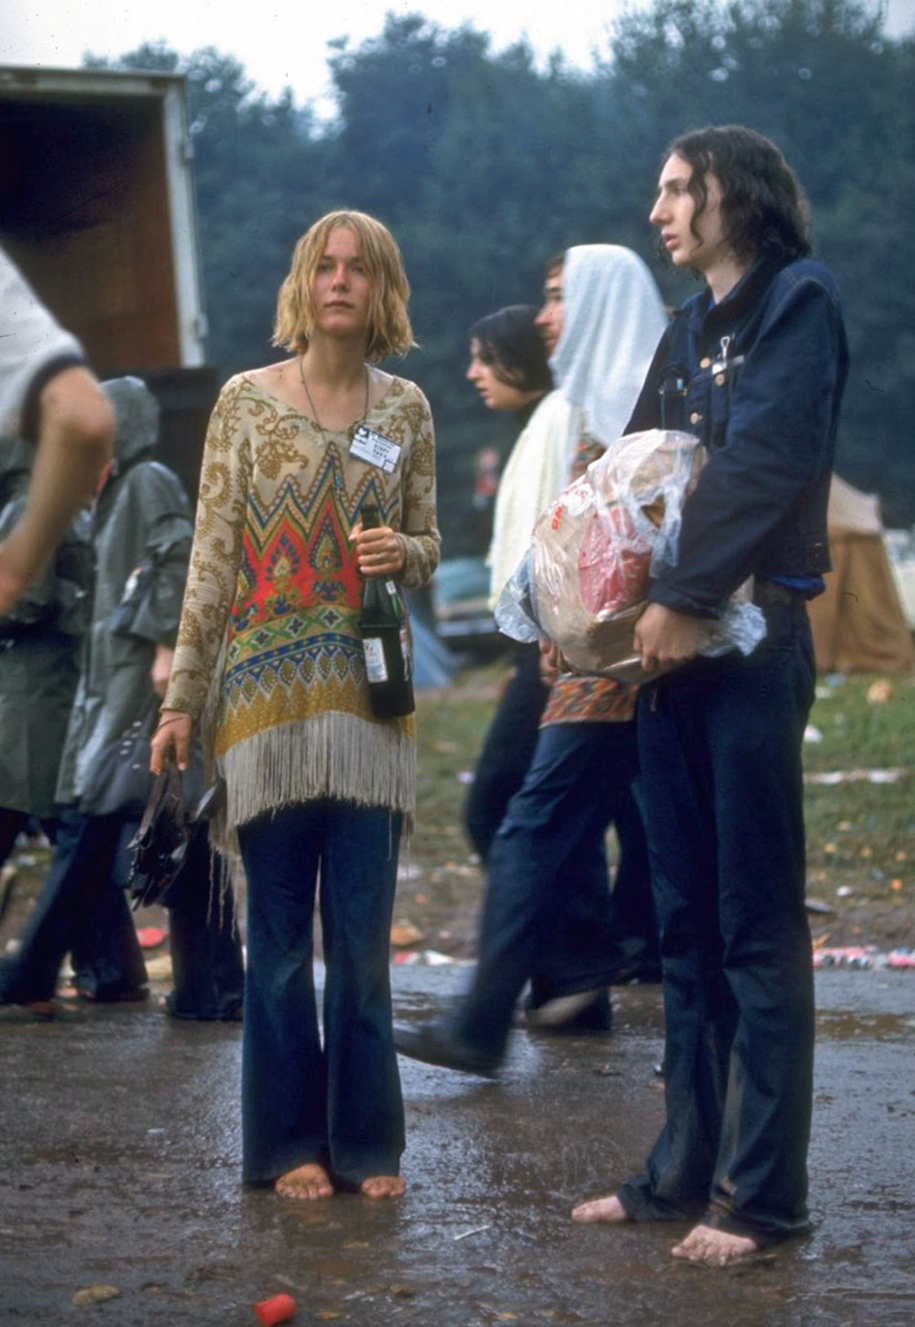 women-fashion-of-60s-woodstock-1969-10